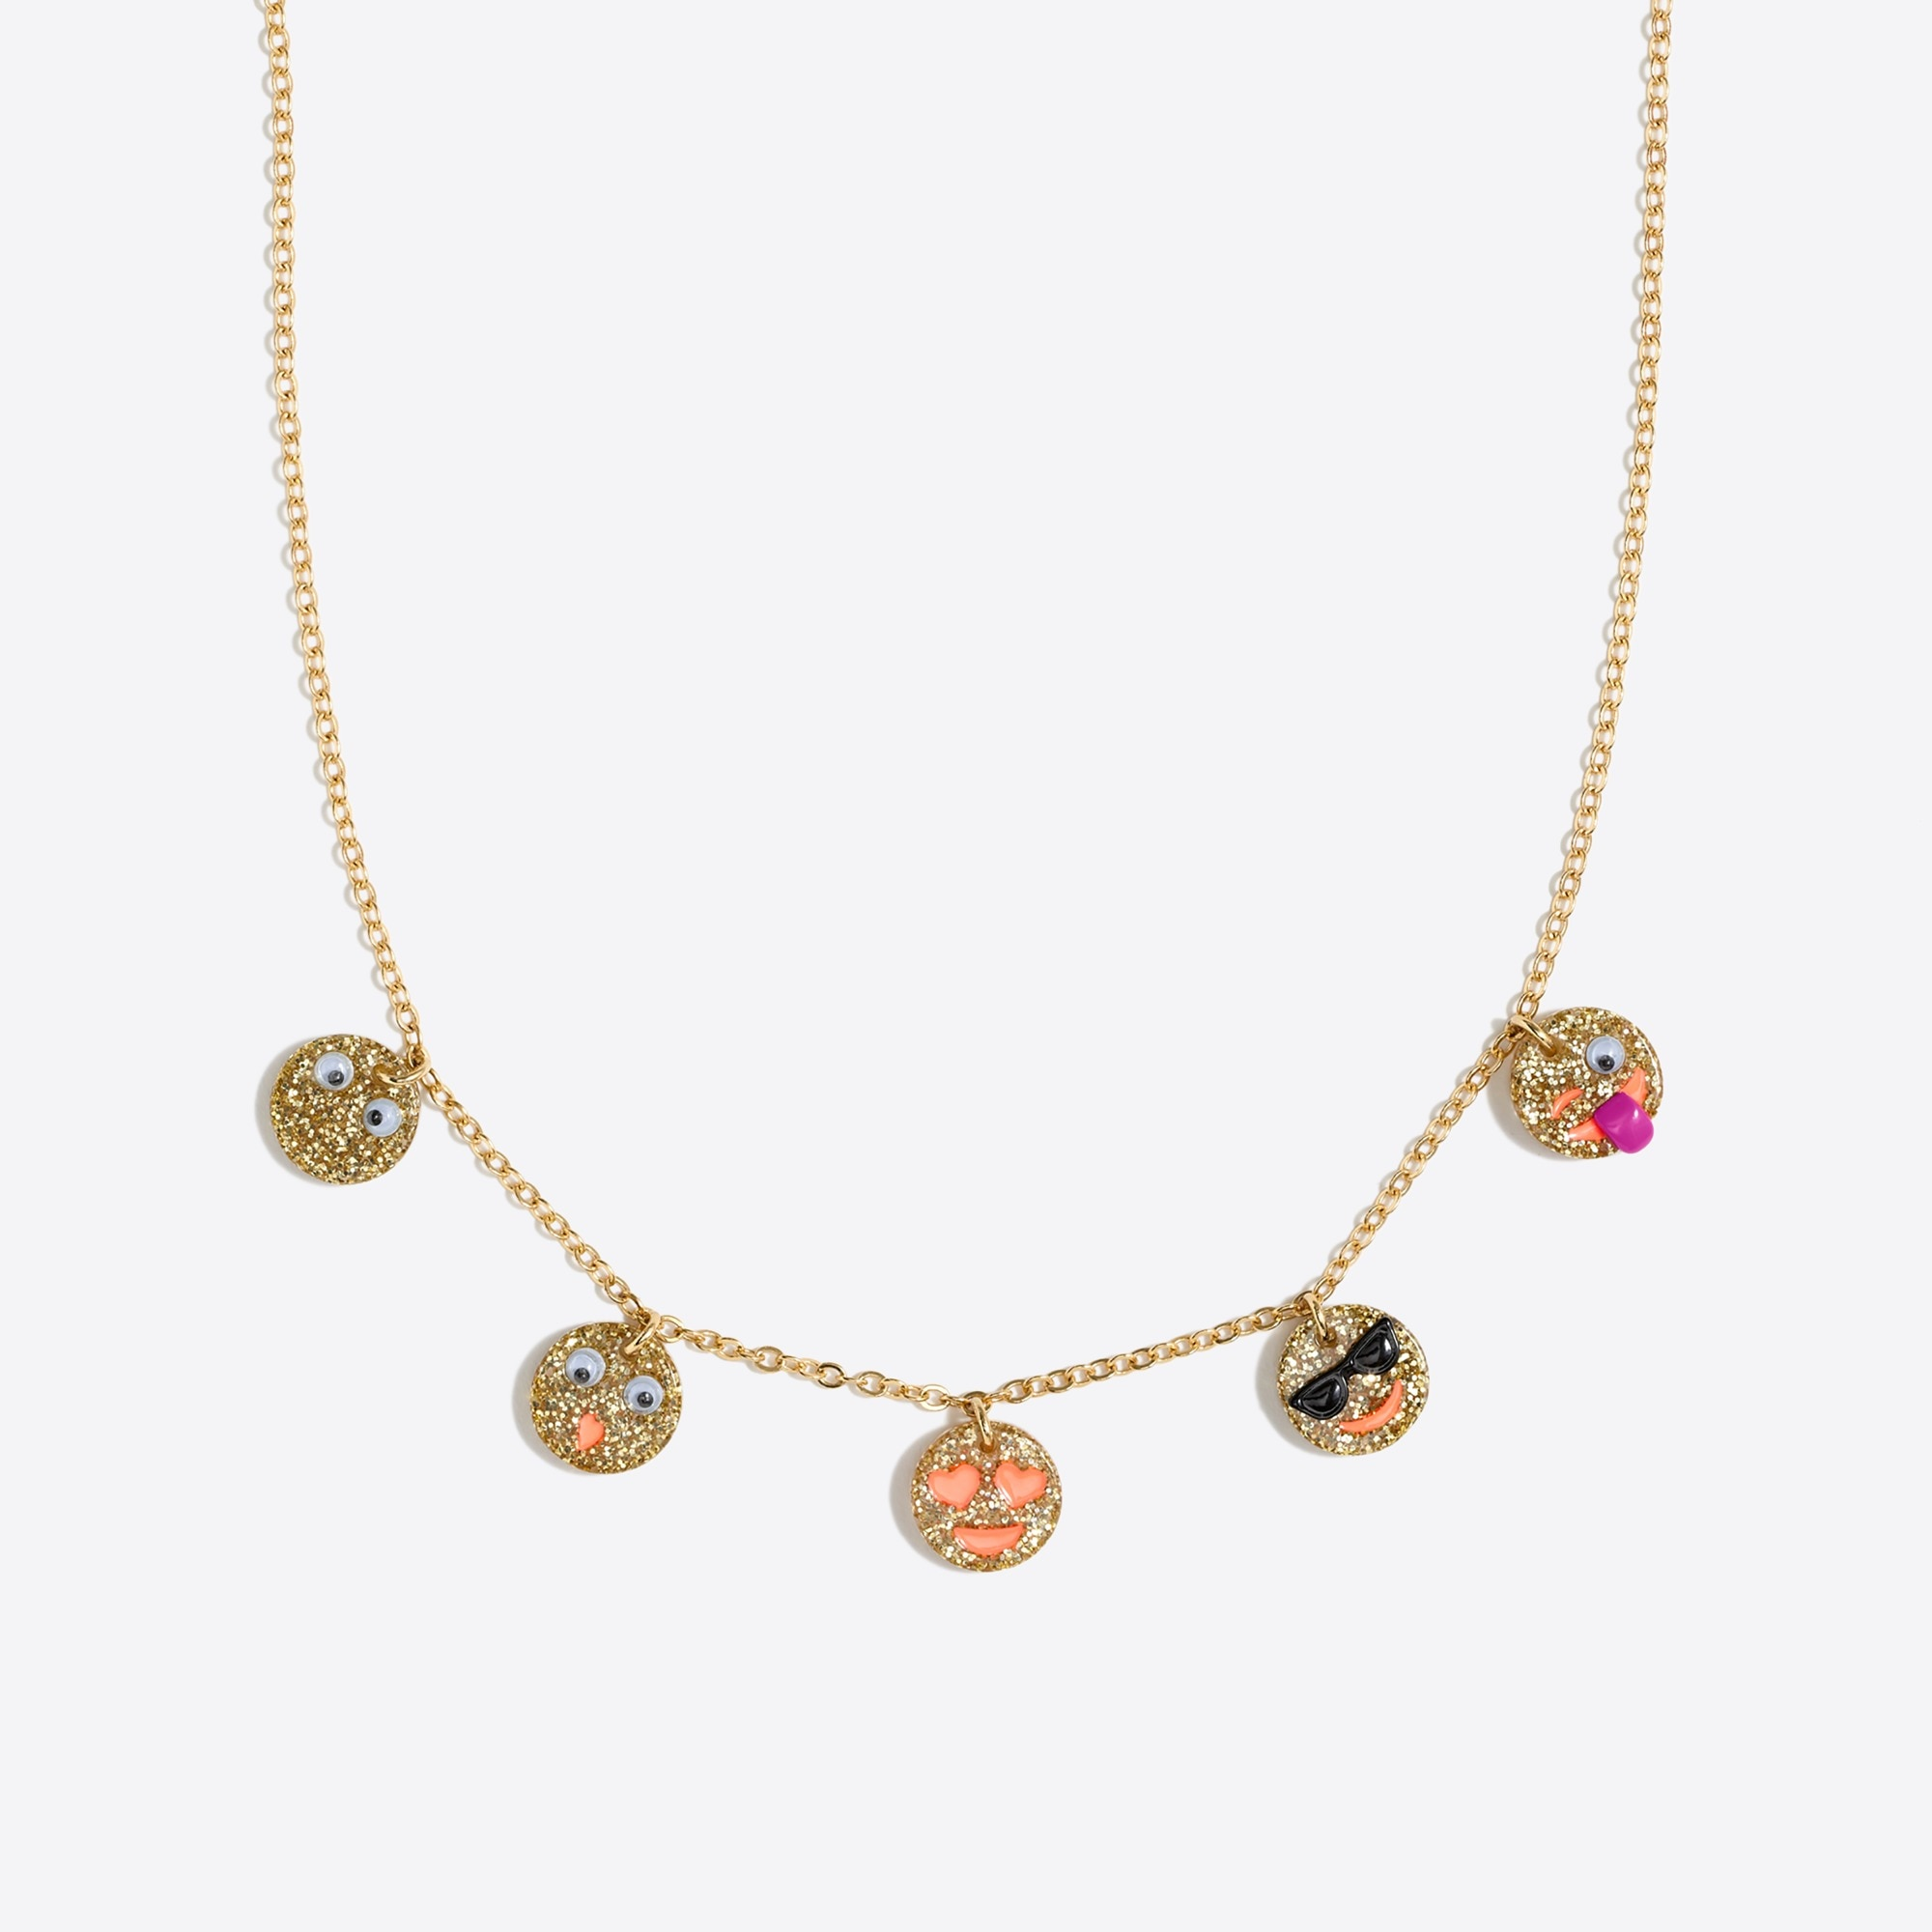 Image 1 for Girls' emoji charm necklace